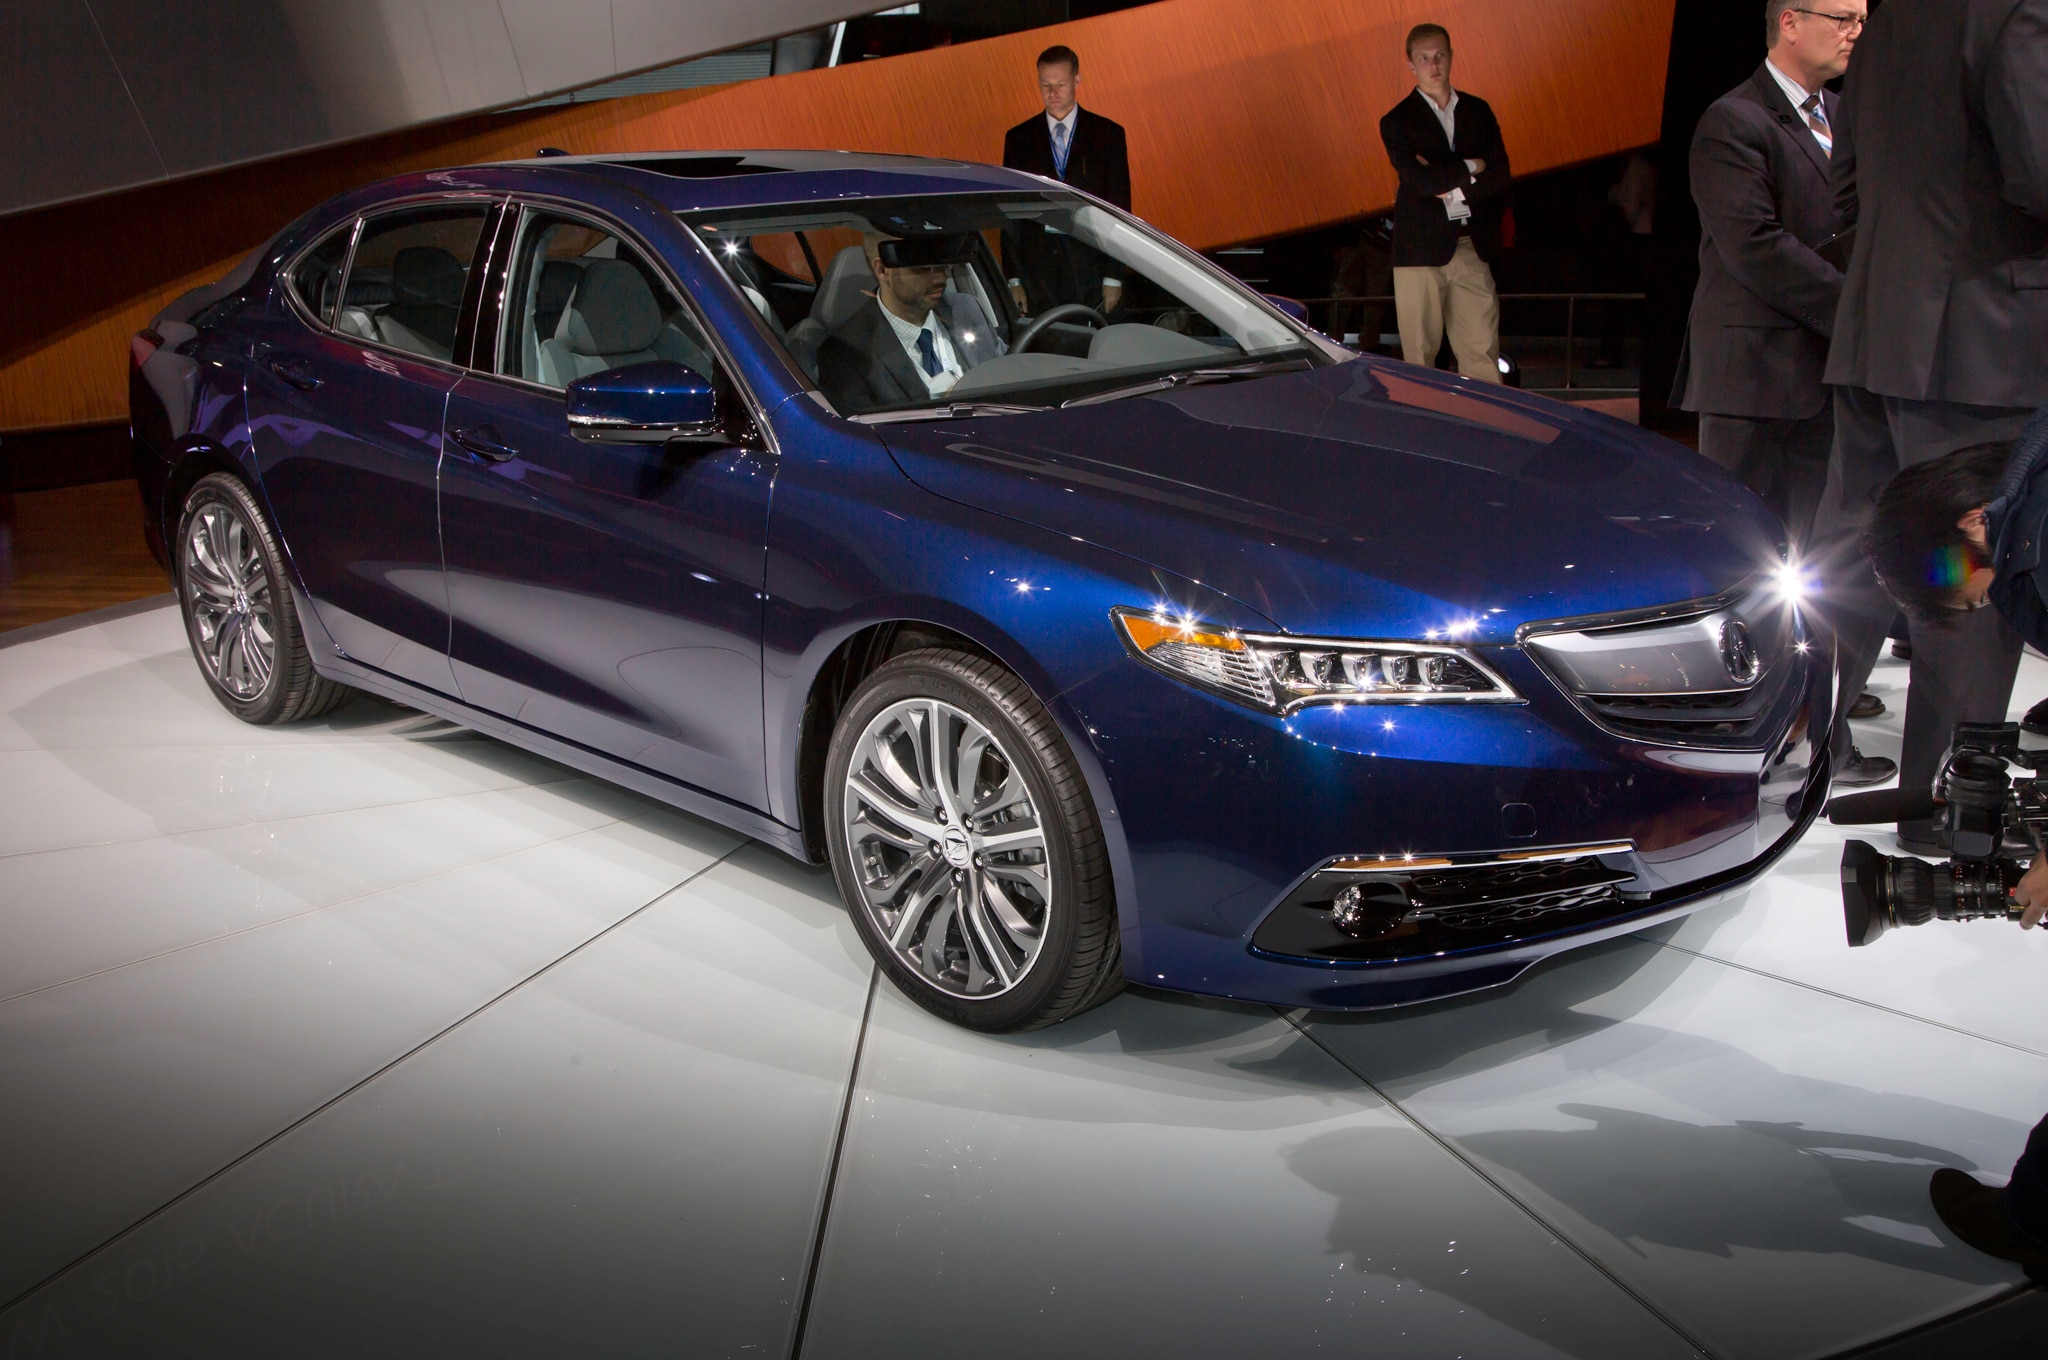 Stay tuned for more news about the 2015 Acura TLX including power